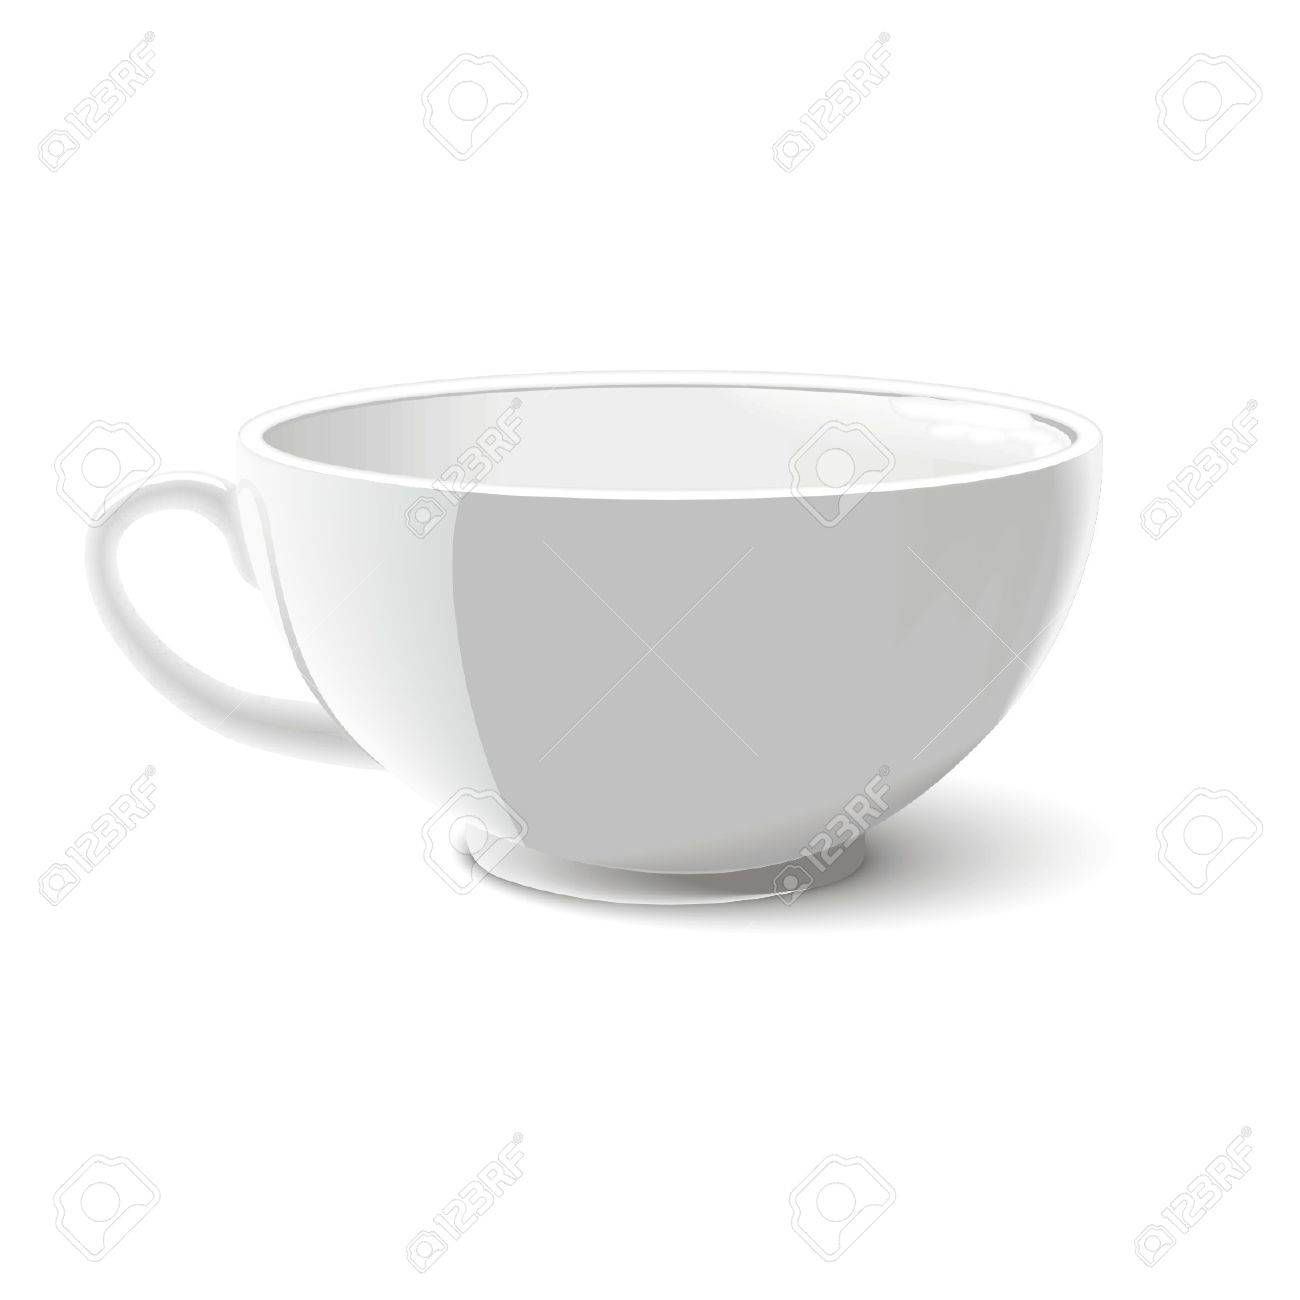 cup - 9962764